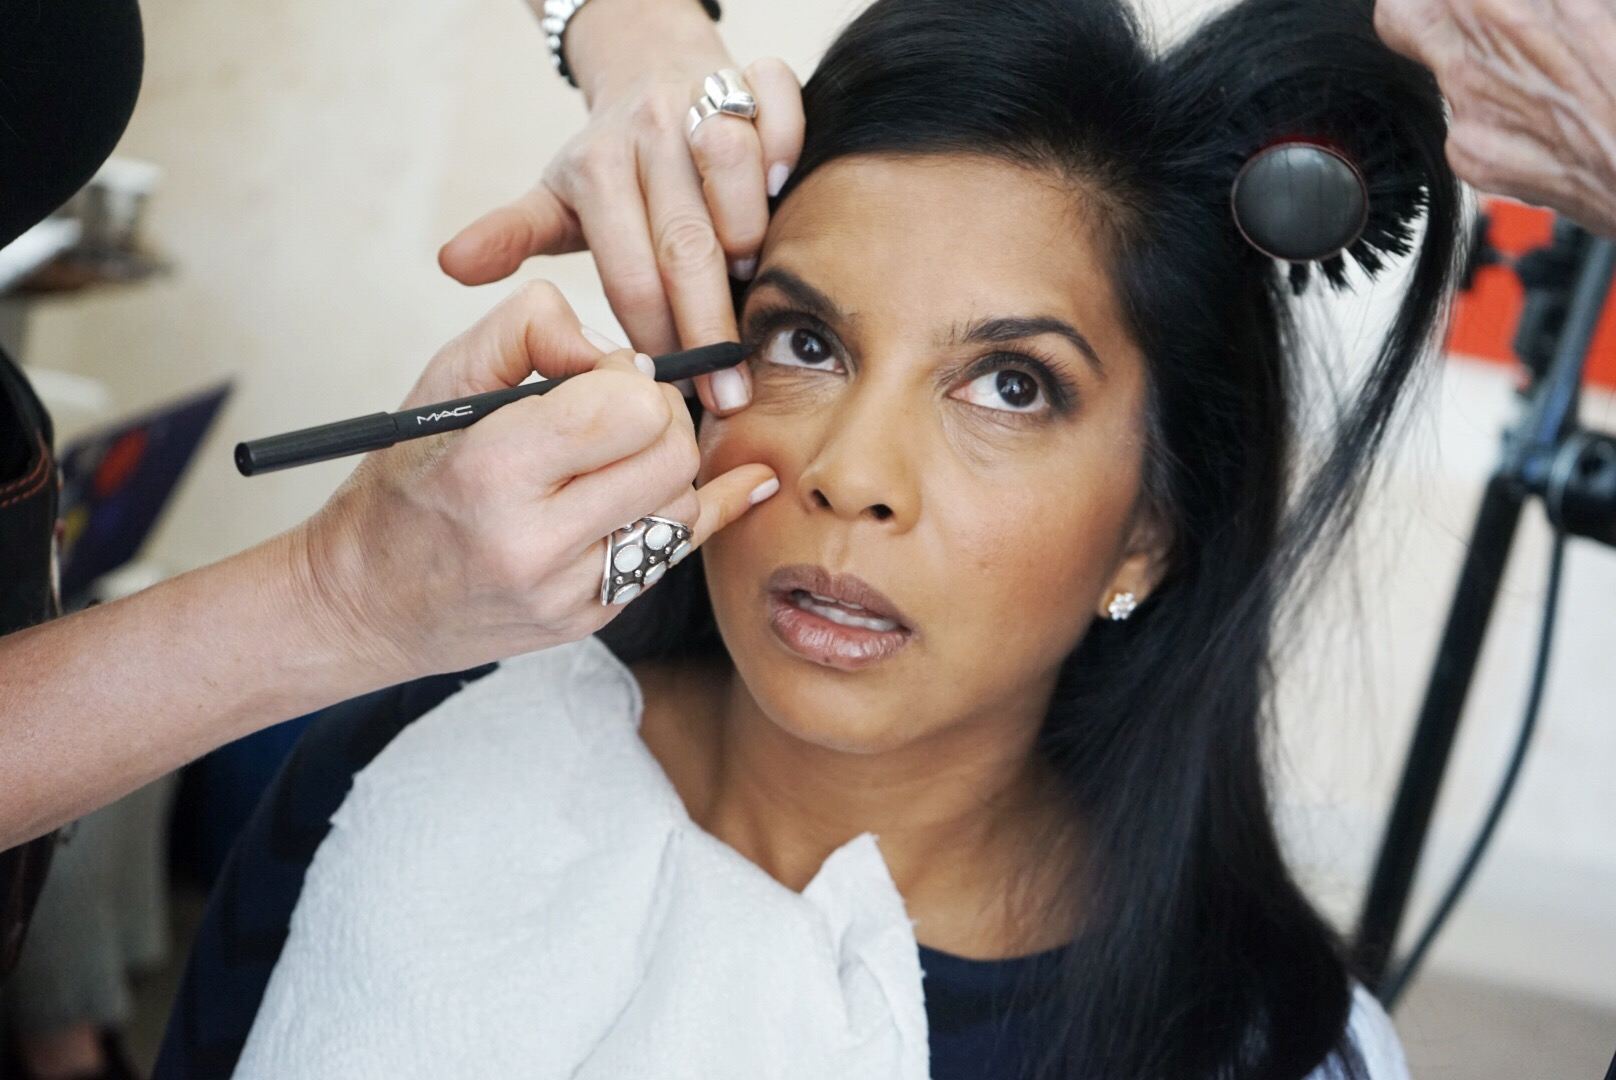 Hitha Herzog getting her eye rimmed with black eyeliner by a makeup artist.